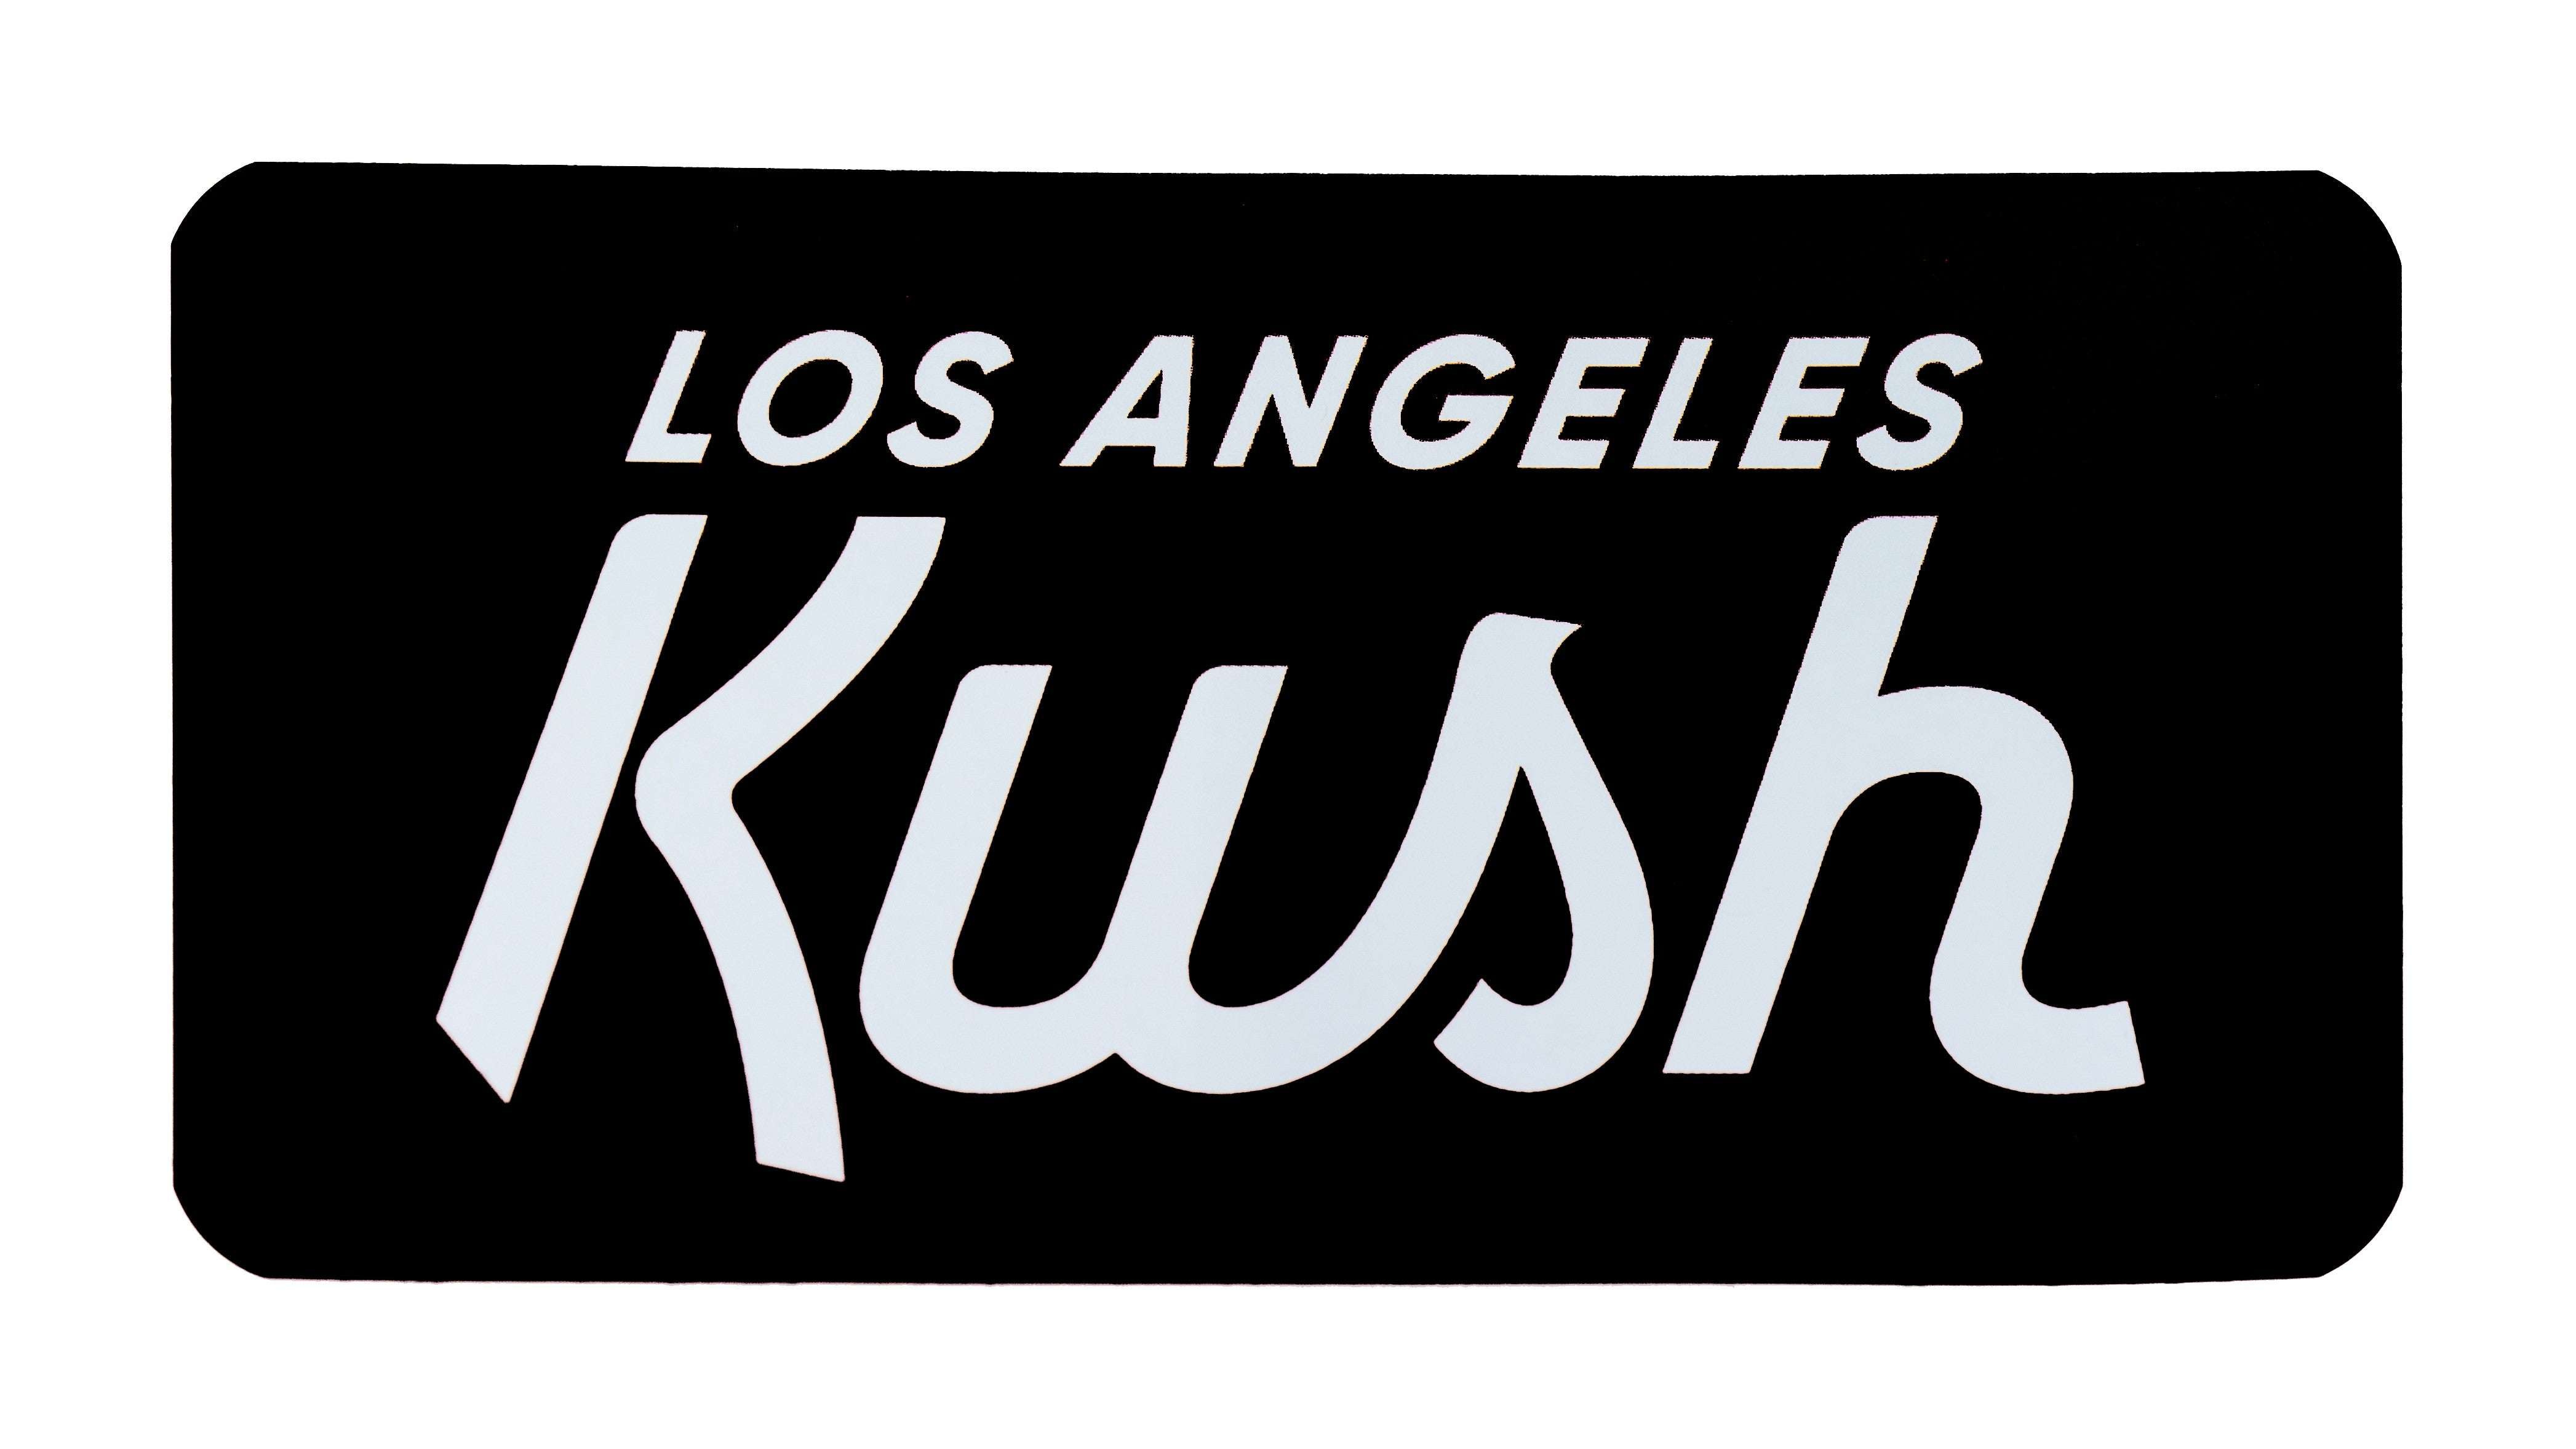 LA Kush OG Sticker - Black/White